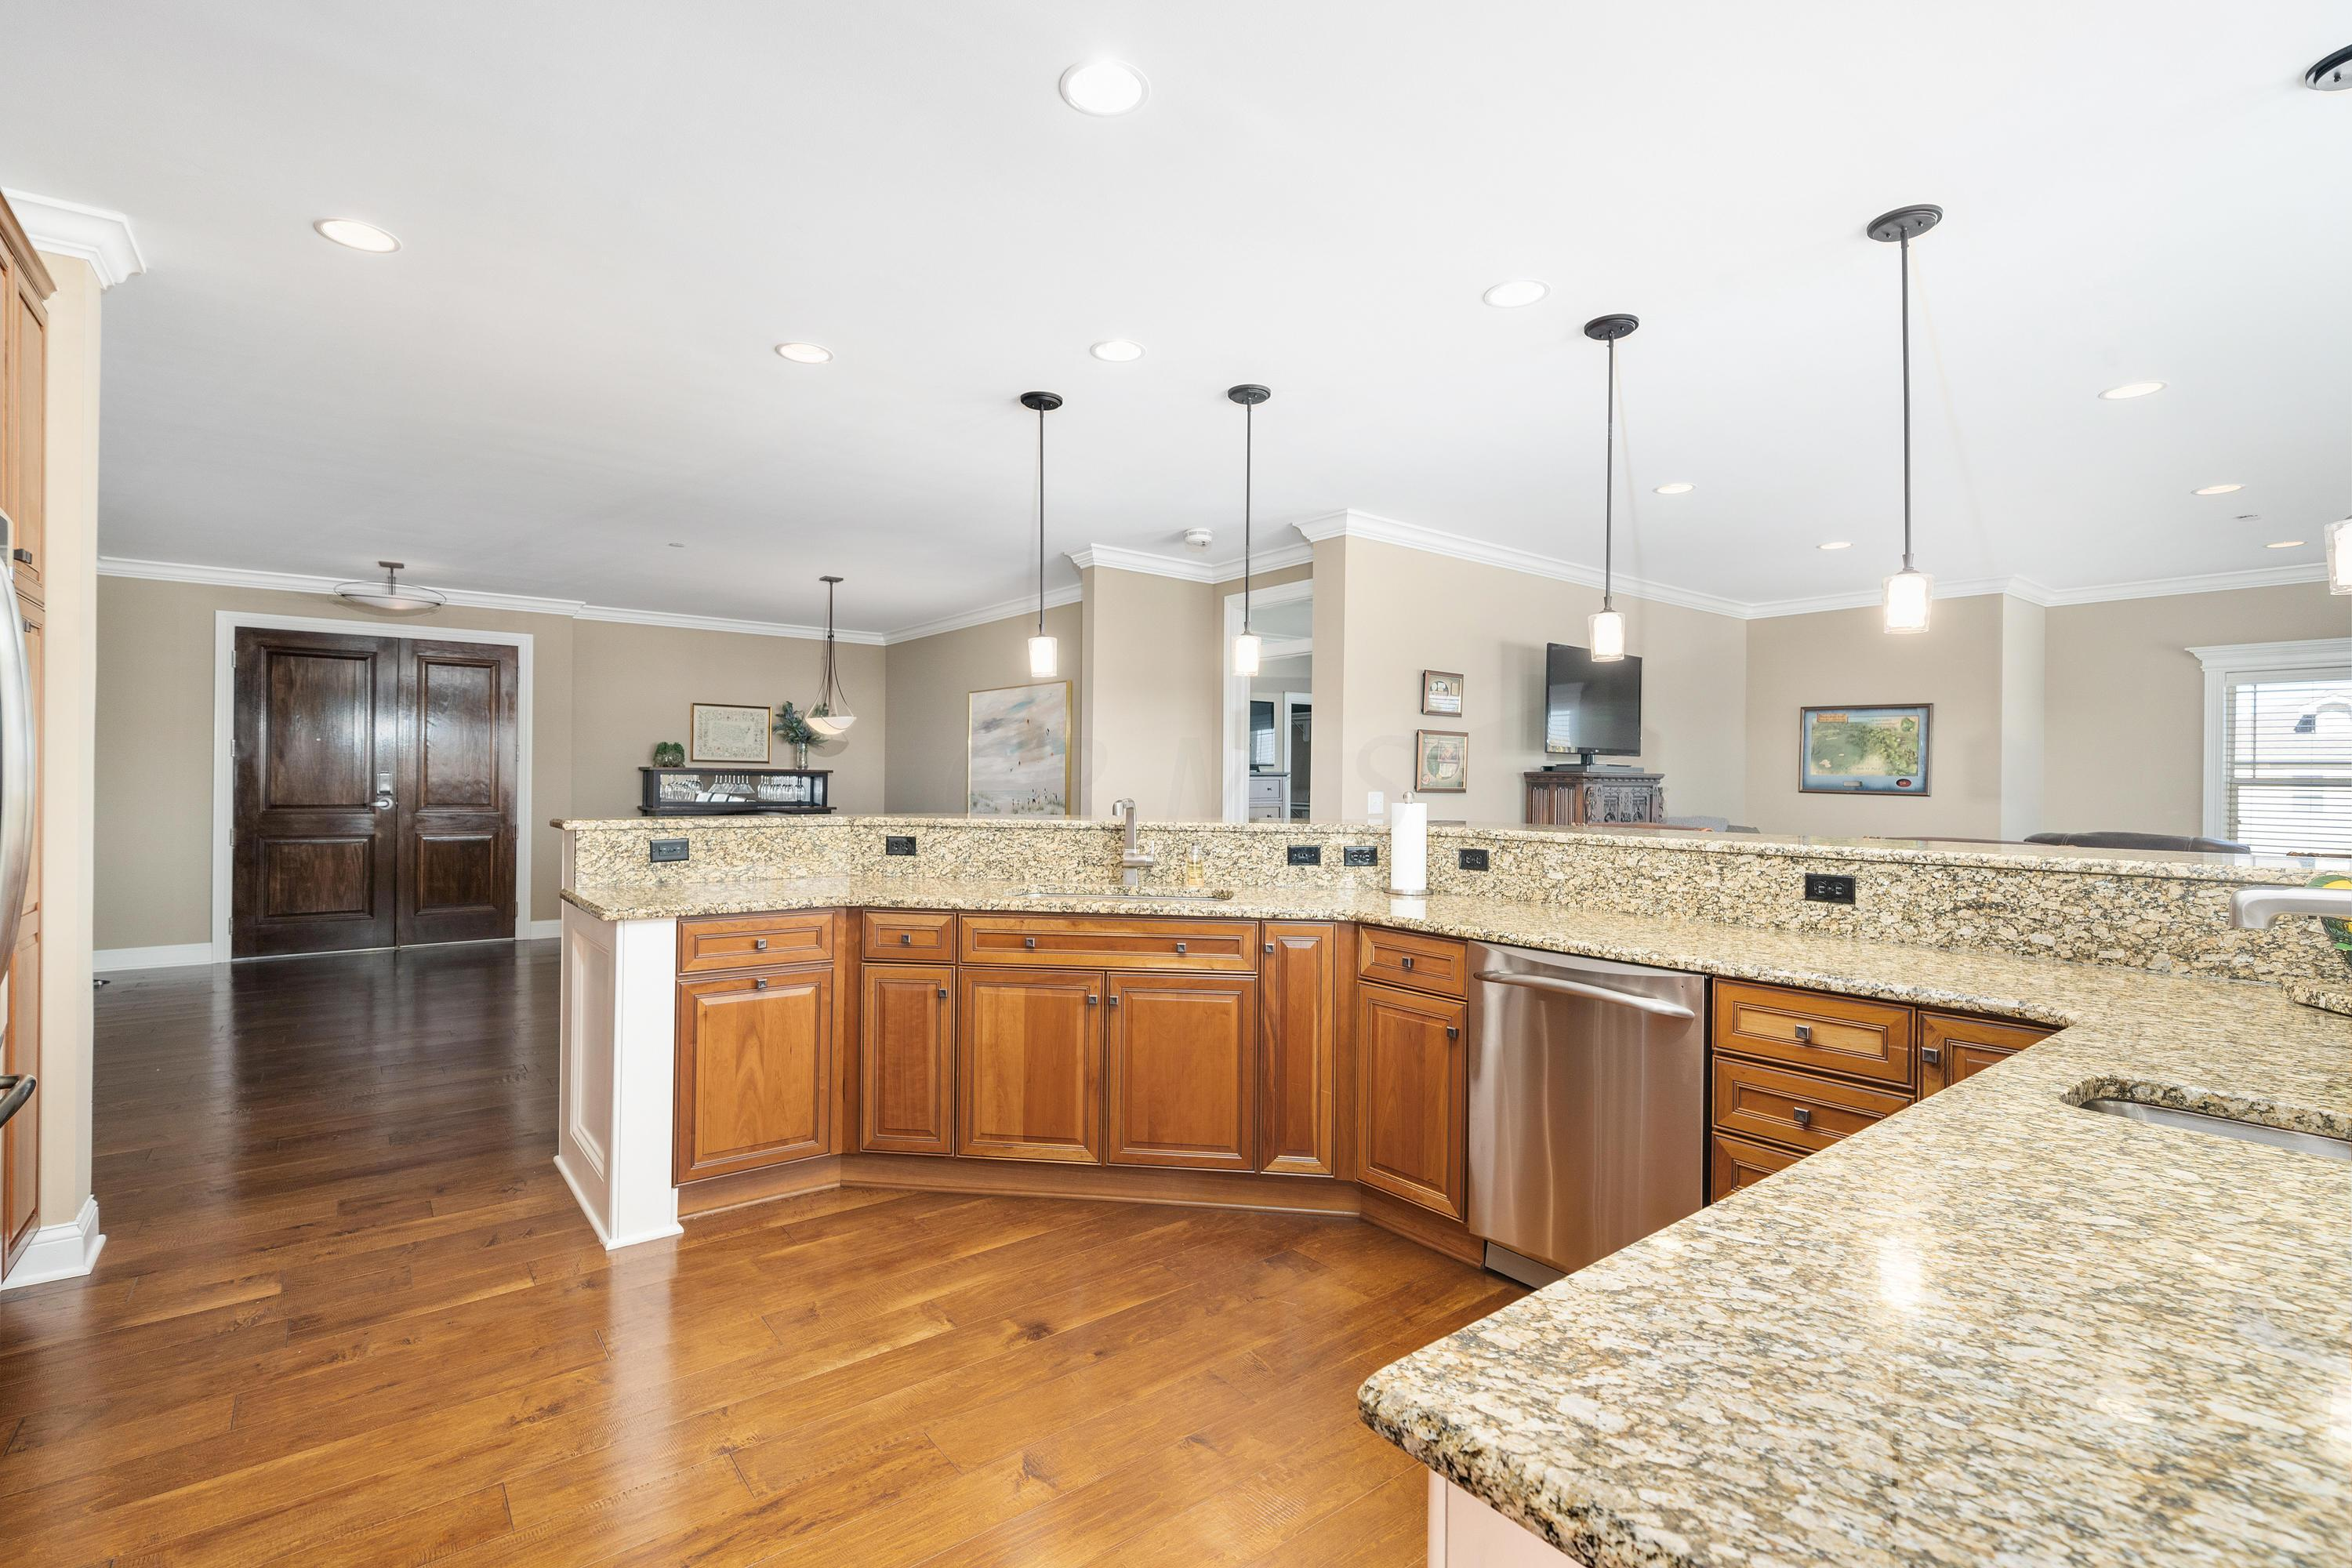 3175 Tremont Road, Upper Arlington, Ohio 43221, 2 Bedrooms Bedrooms, ,3 BathroomsBathrooms,Residential,For Sale,Tremont,221000694